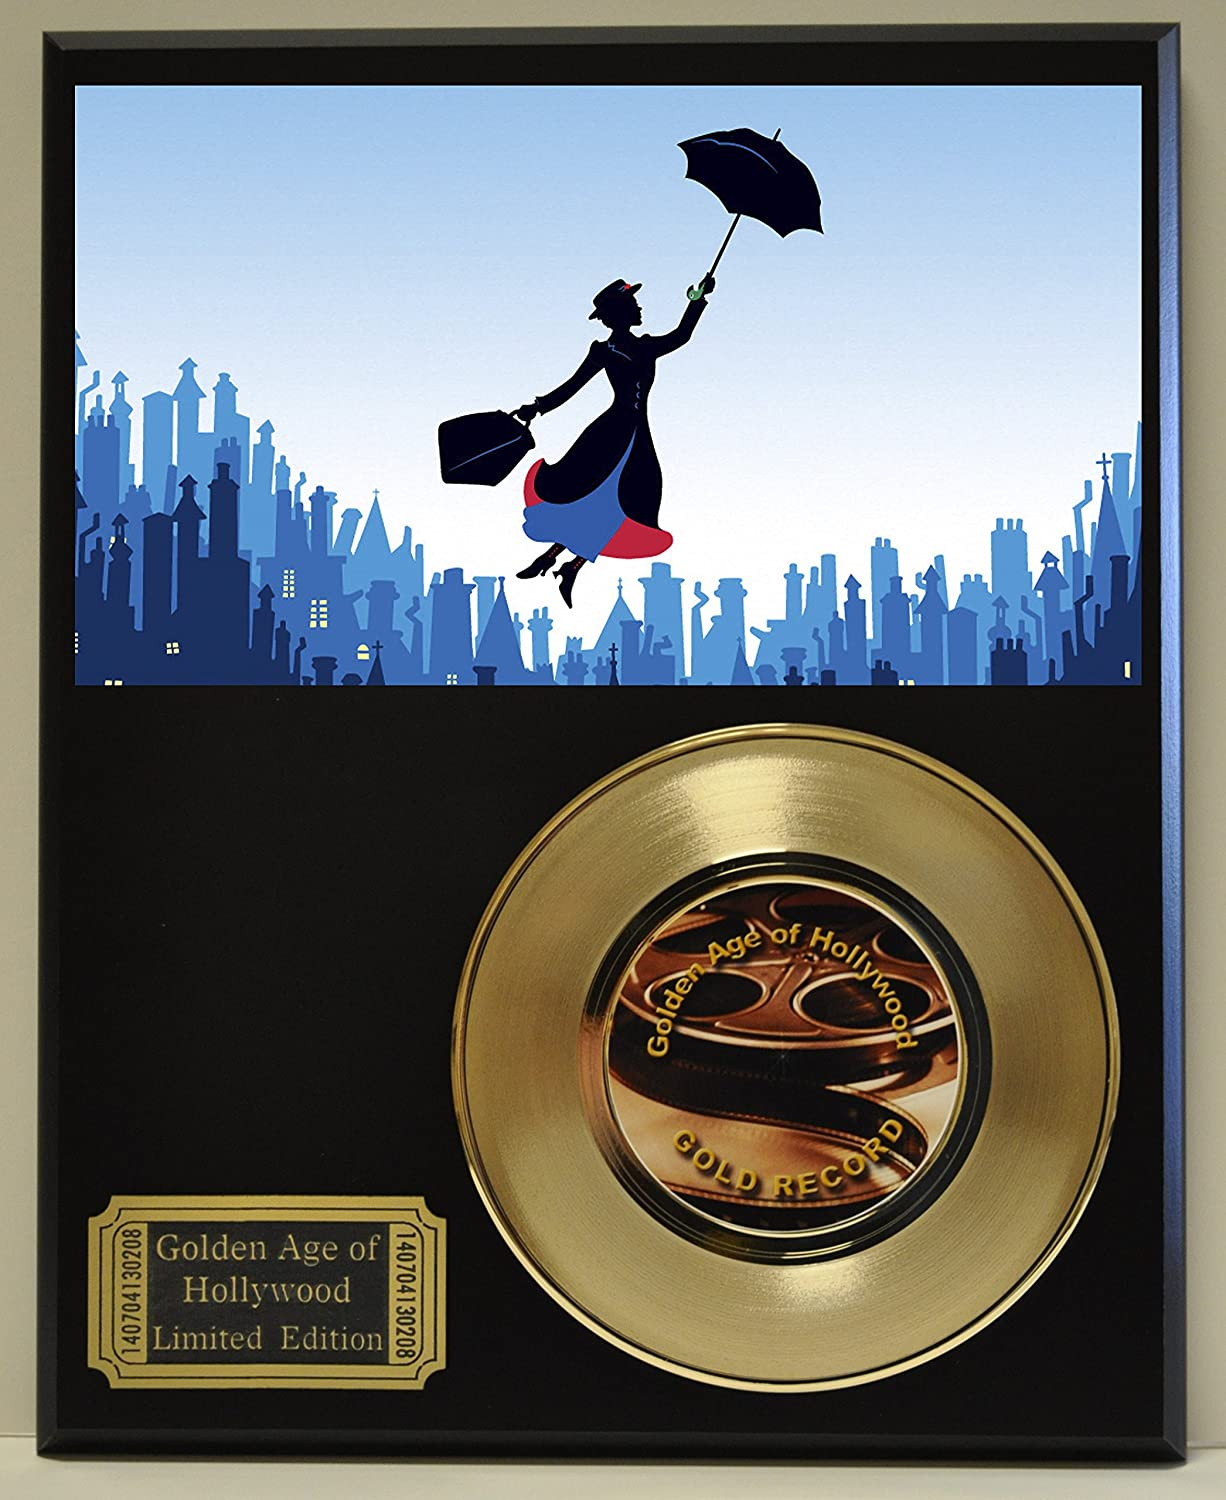 Mary Poppins Limited Edition Gold 45 Record Display. Only 500 made. Limited quanities. FREE US SHIPPING Classic Rock Collectibles